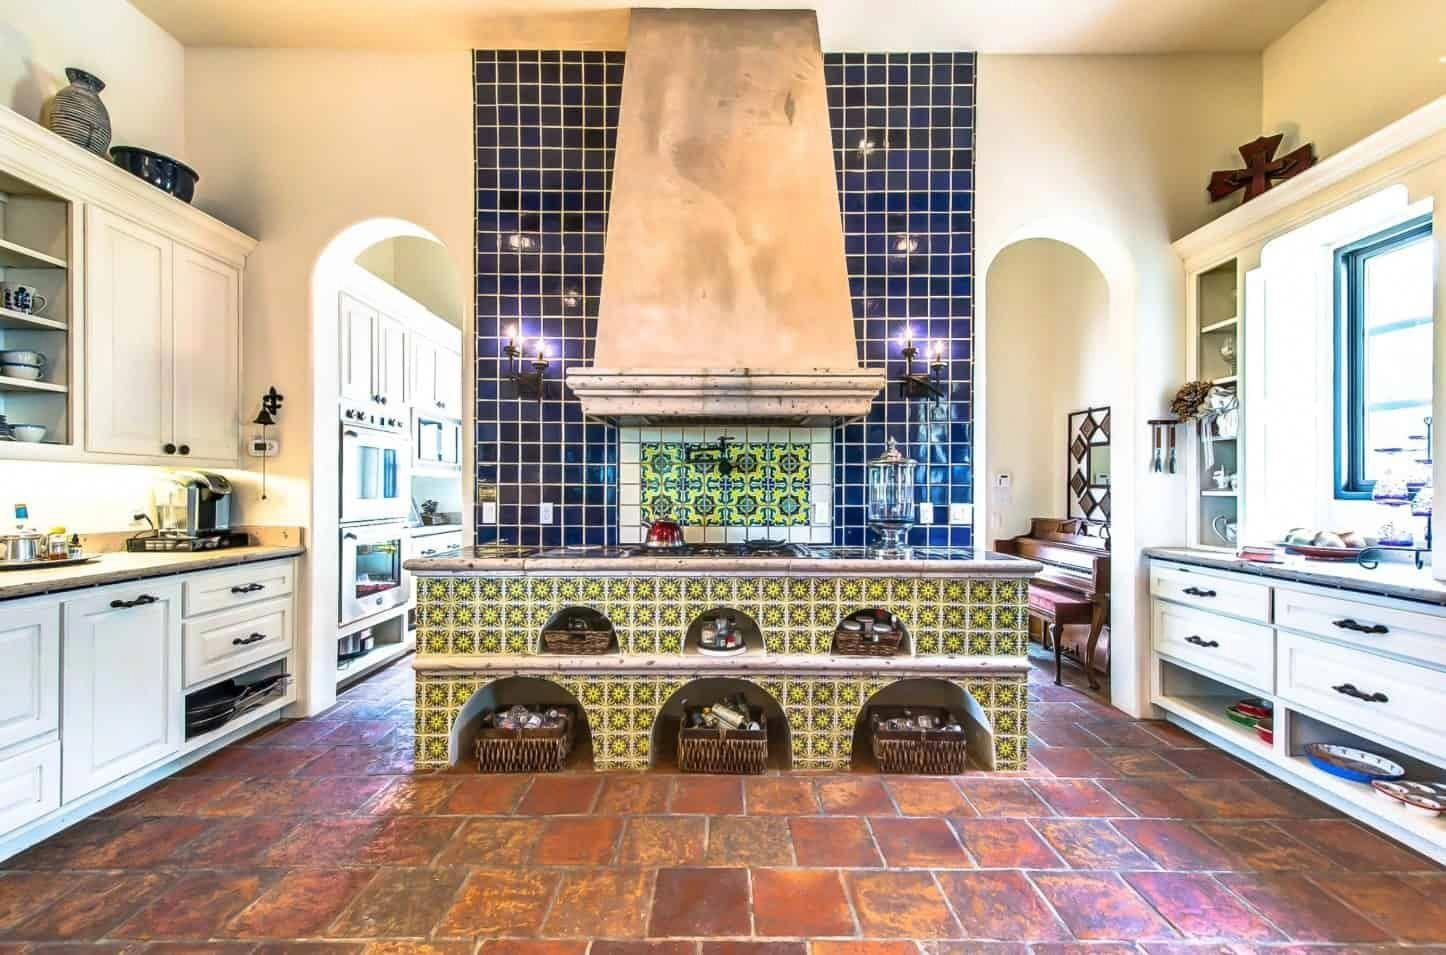 - Southwestern Kitchen Features A Blue Tile Backsplash Accented With